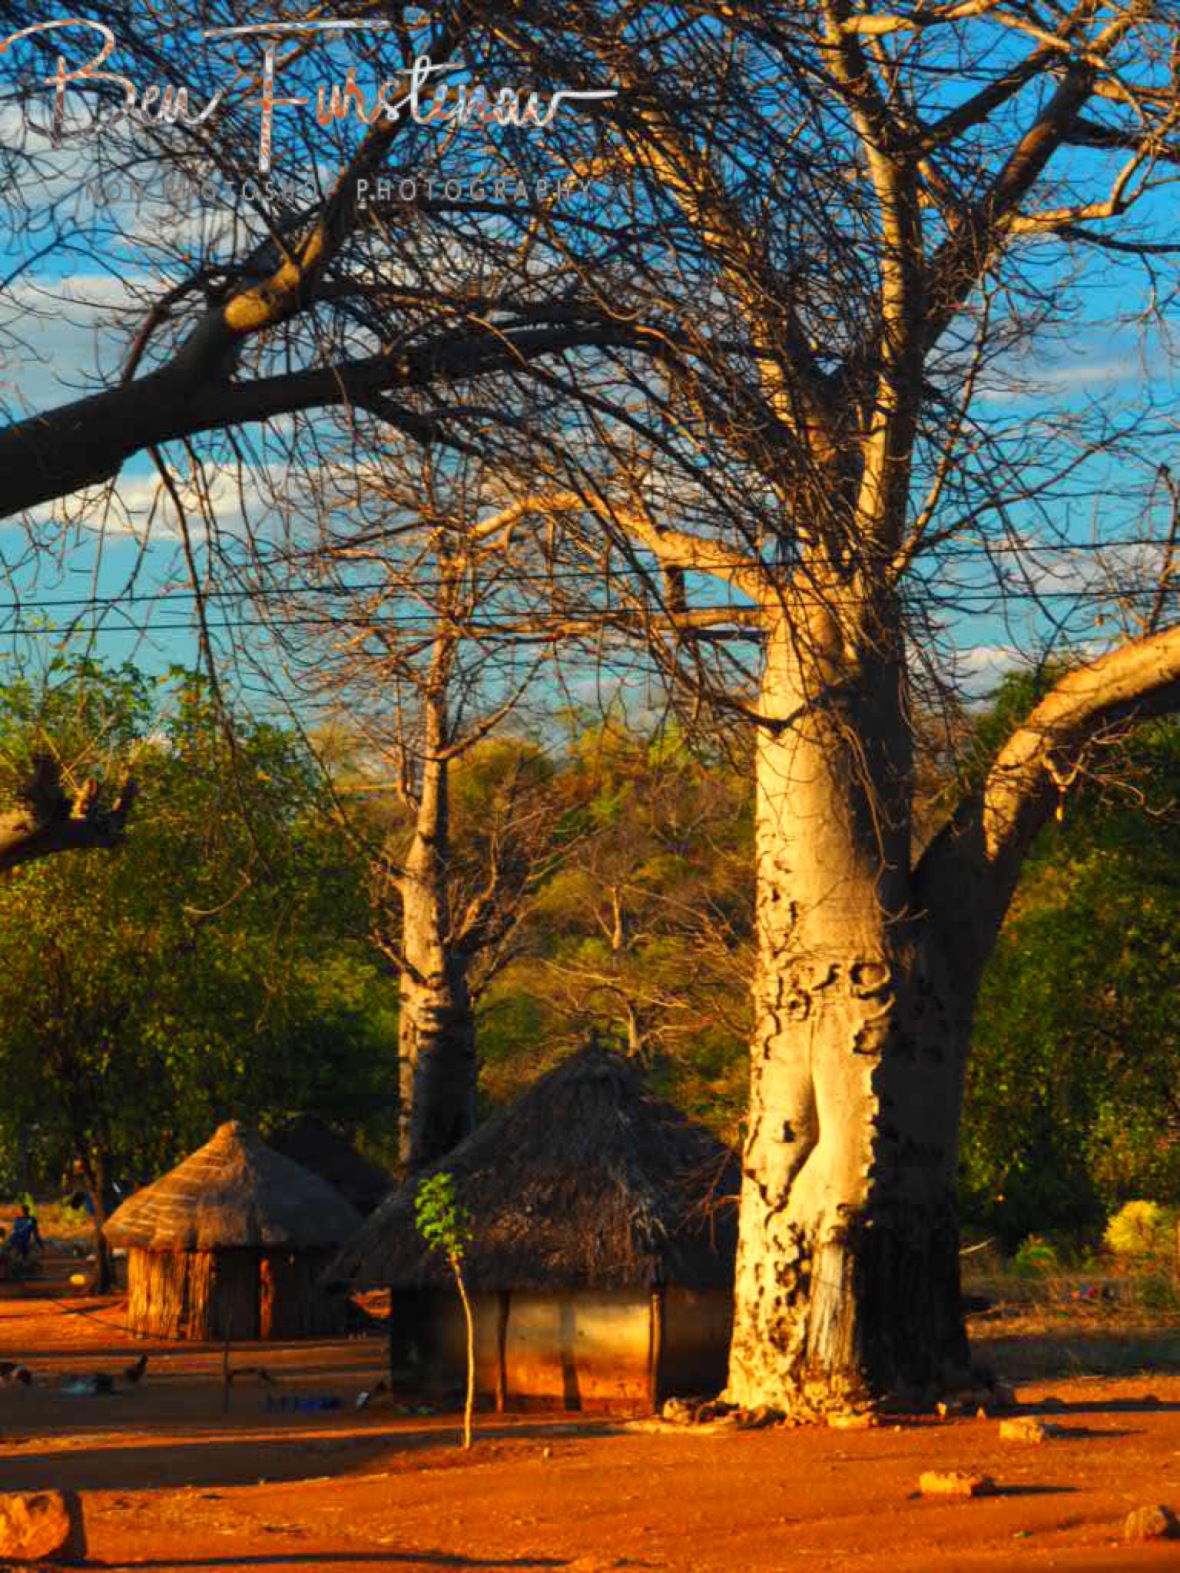 Living along alien trees, Tete, Mozambique